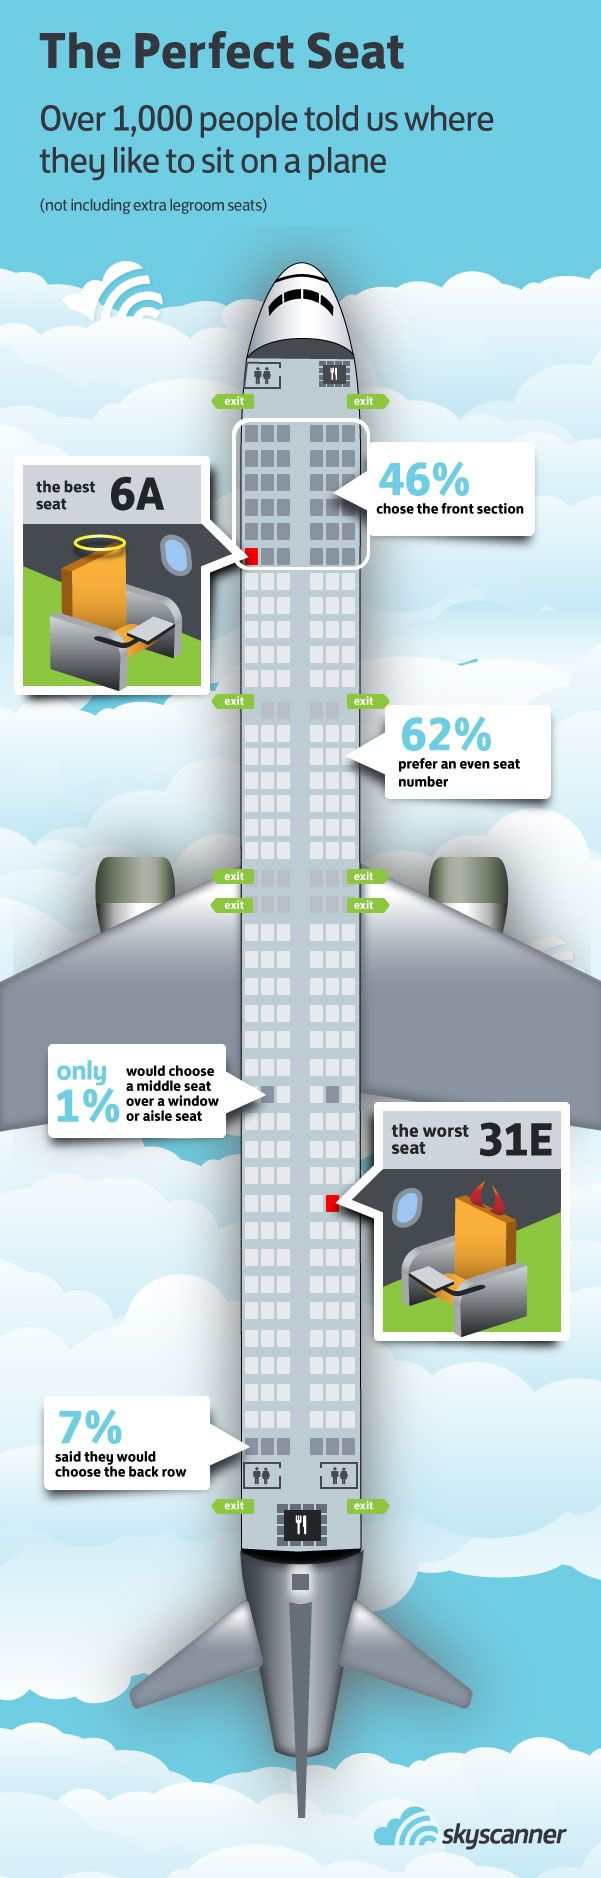 "[infographic] ""The perfect seat"" Apr-2012 by Skyscanner.net - Survey: Over 1000 people told Skyscanner where they like to sit on a plane - Original Post:   http://www.skyscanner.net/news/skyscanner-reveals-perfect-seat-6a"